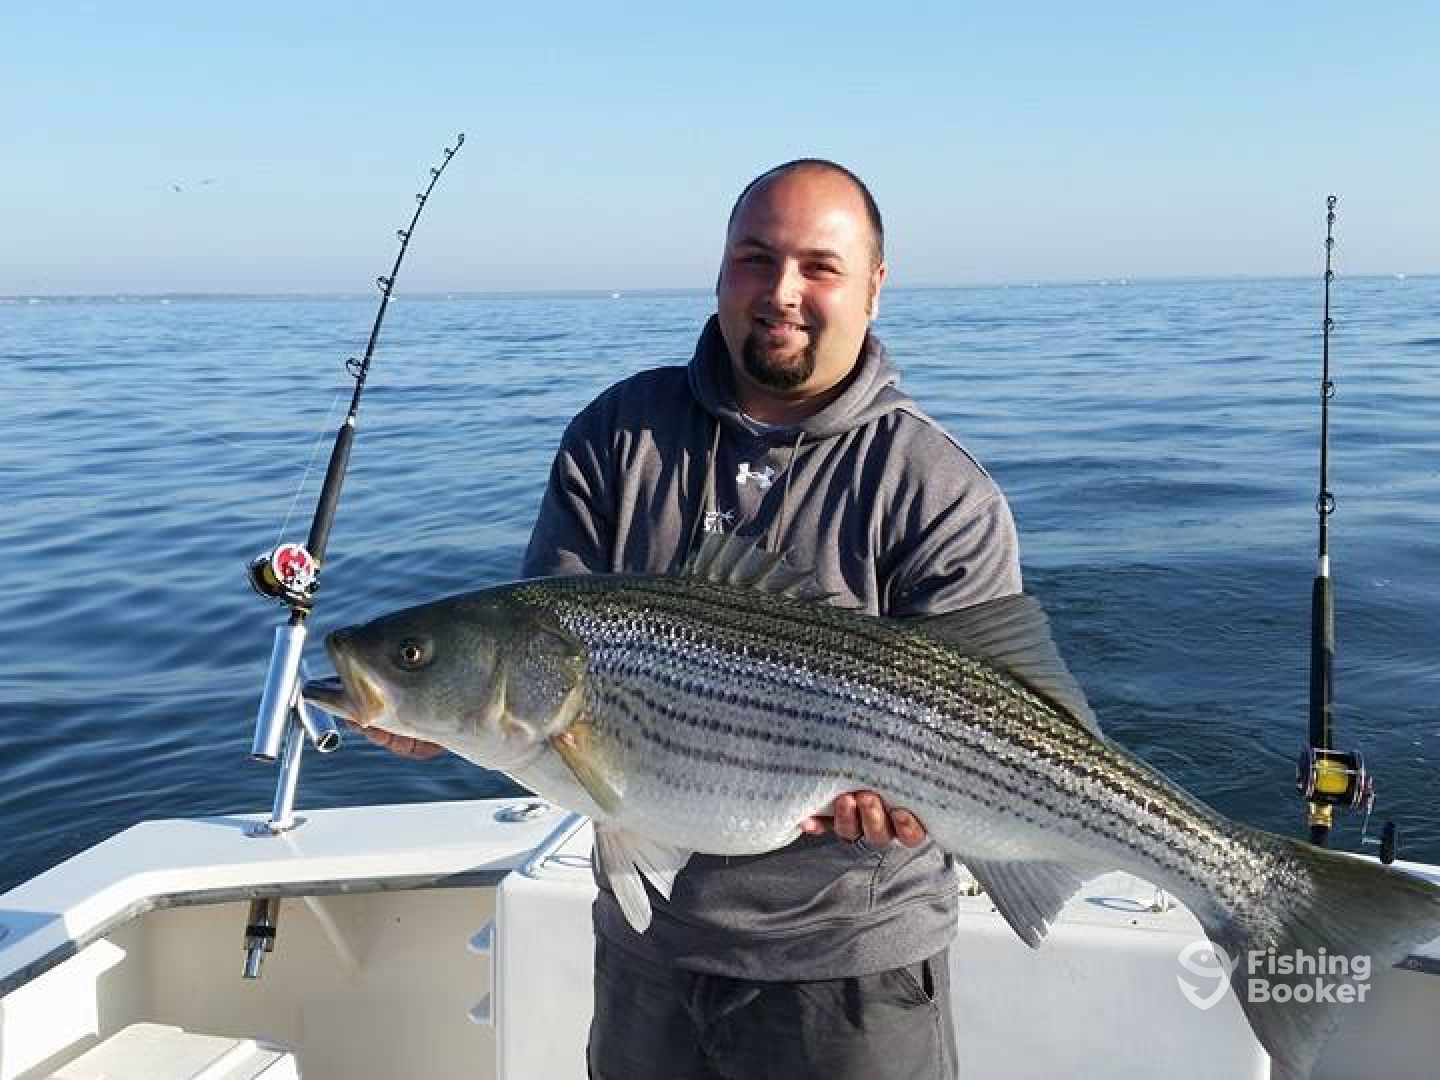 Fin hunter charter fishing deale md fishingbooker for Annapolis fishing charters